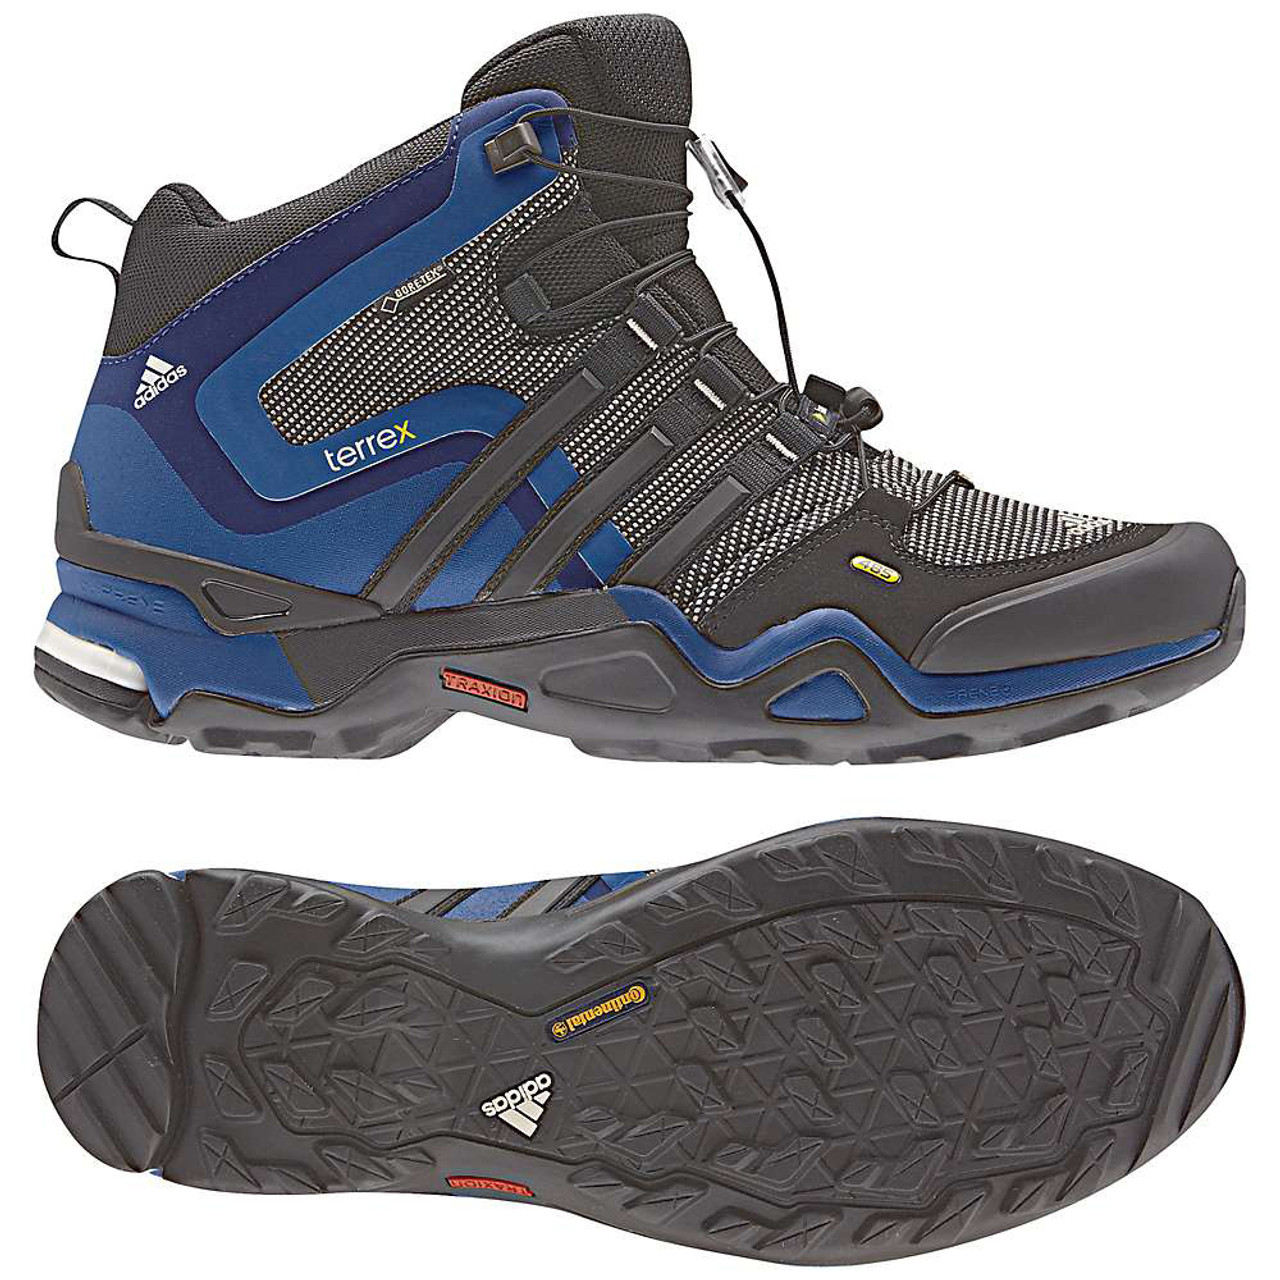 the best attitude 58625 f4ae5 Adidas Terrex Fast X Mid GTX Blue/Black Mens Hiking Boots